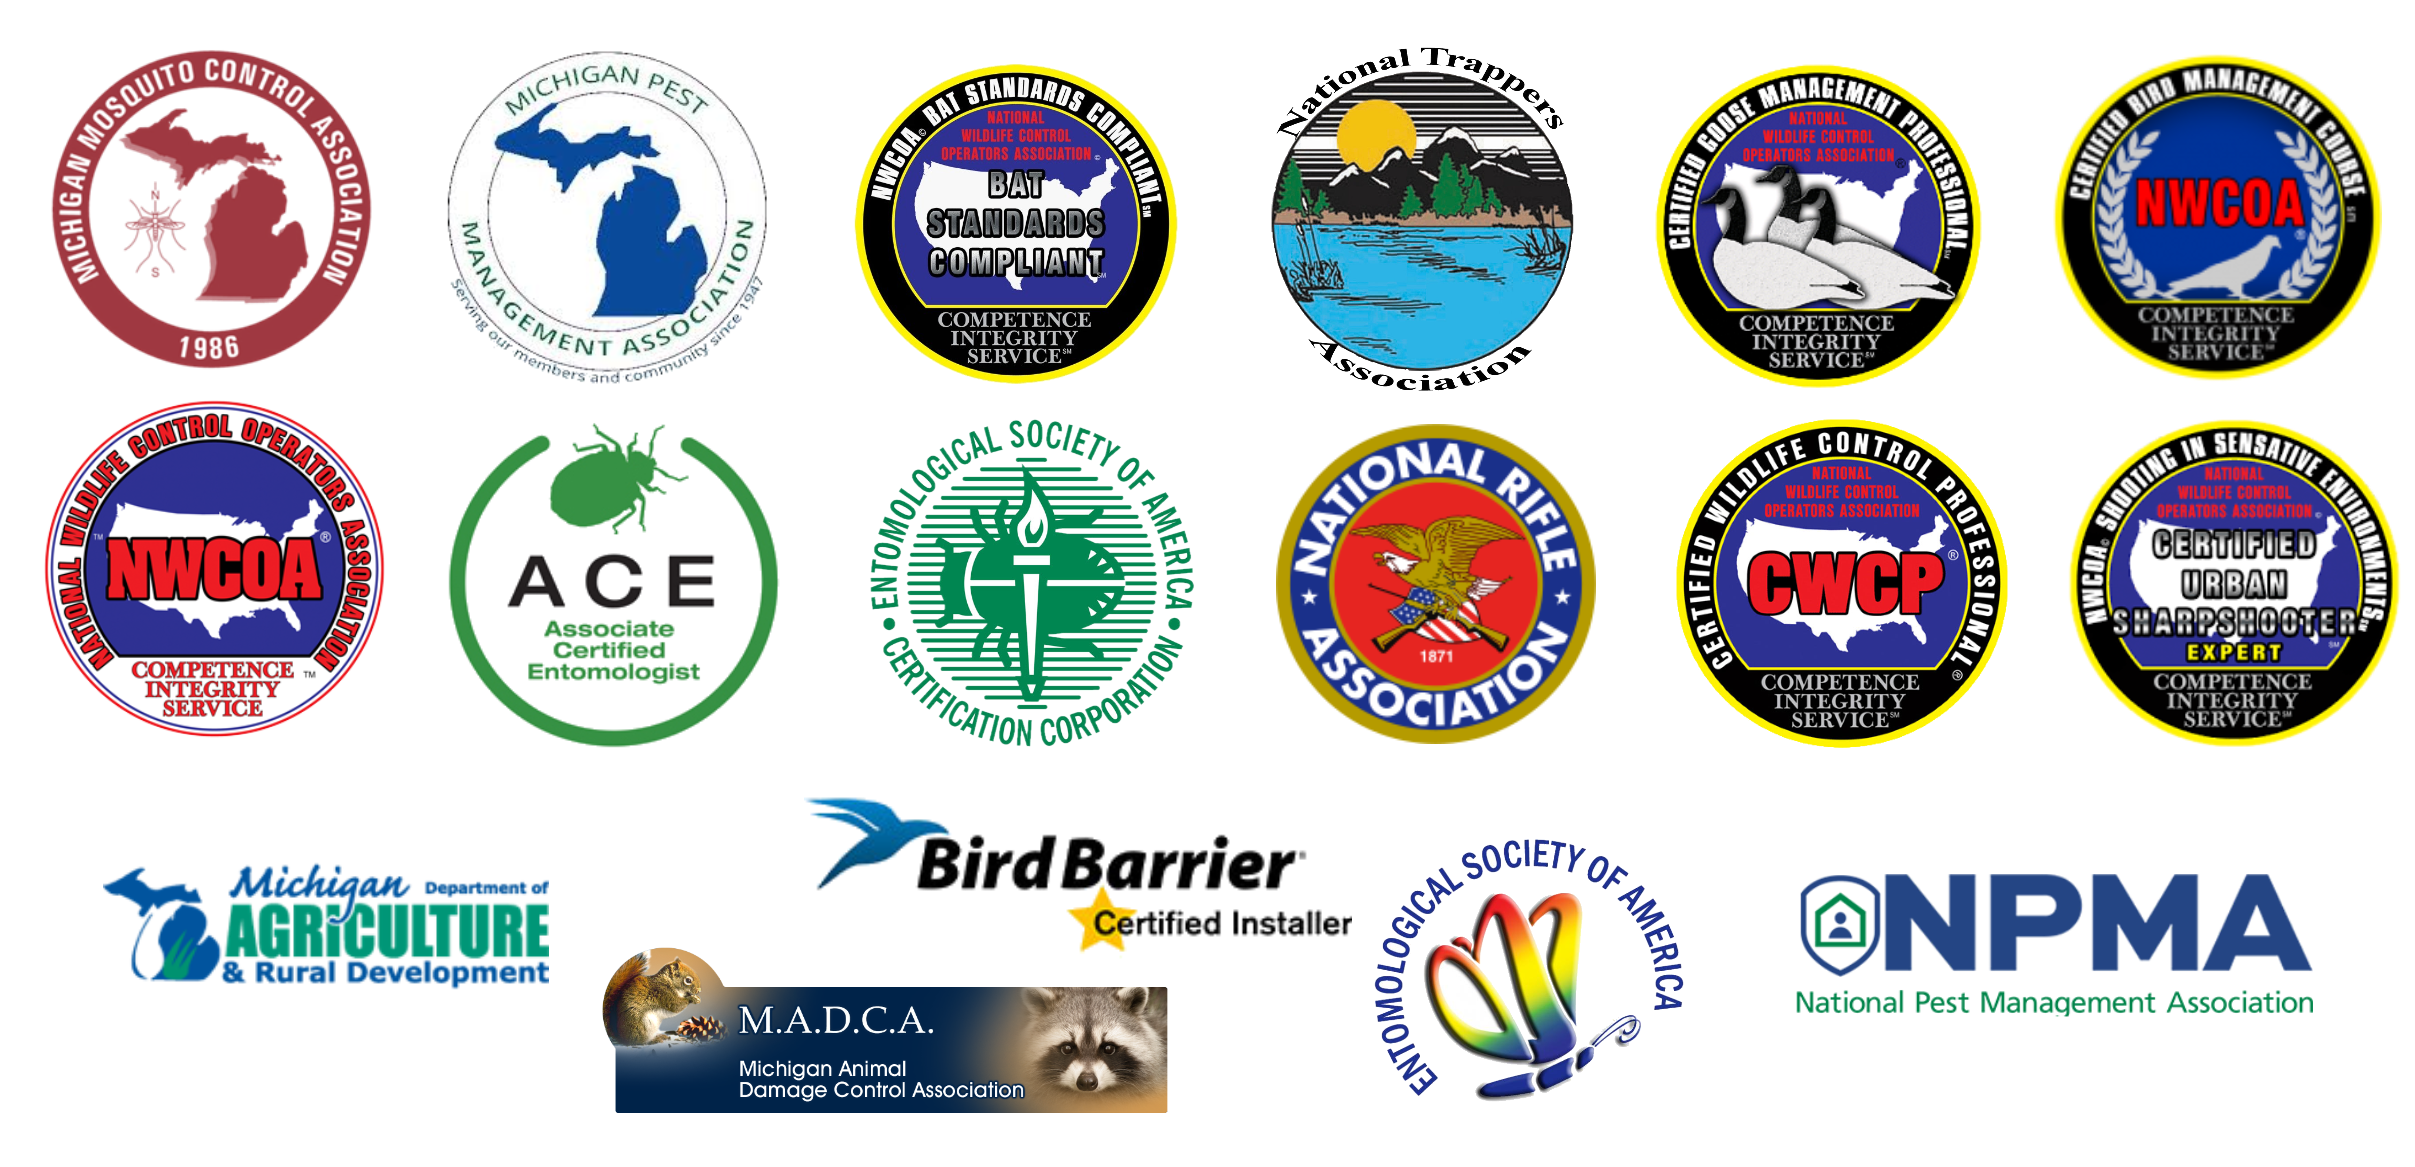 pest and wildlife logos for certifications and associations.png